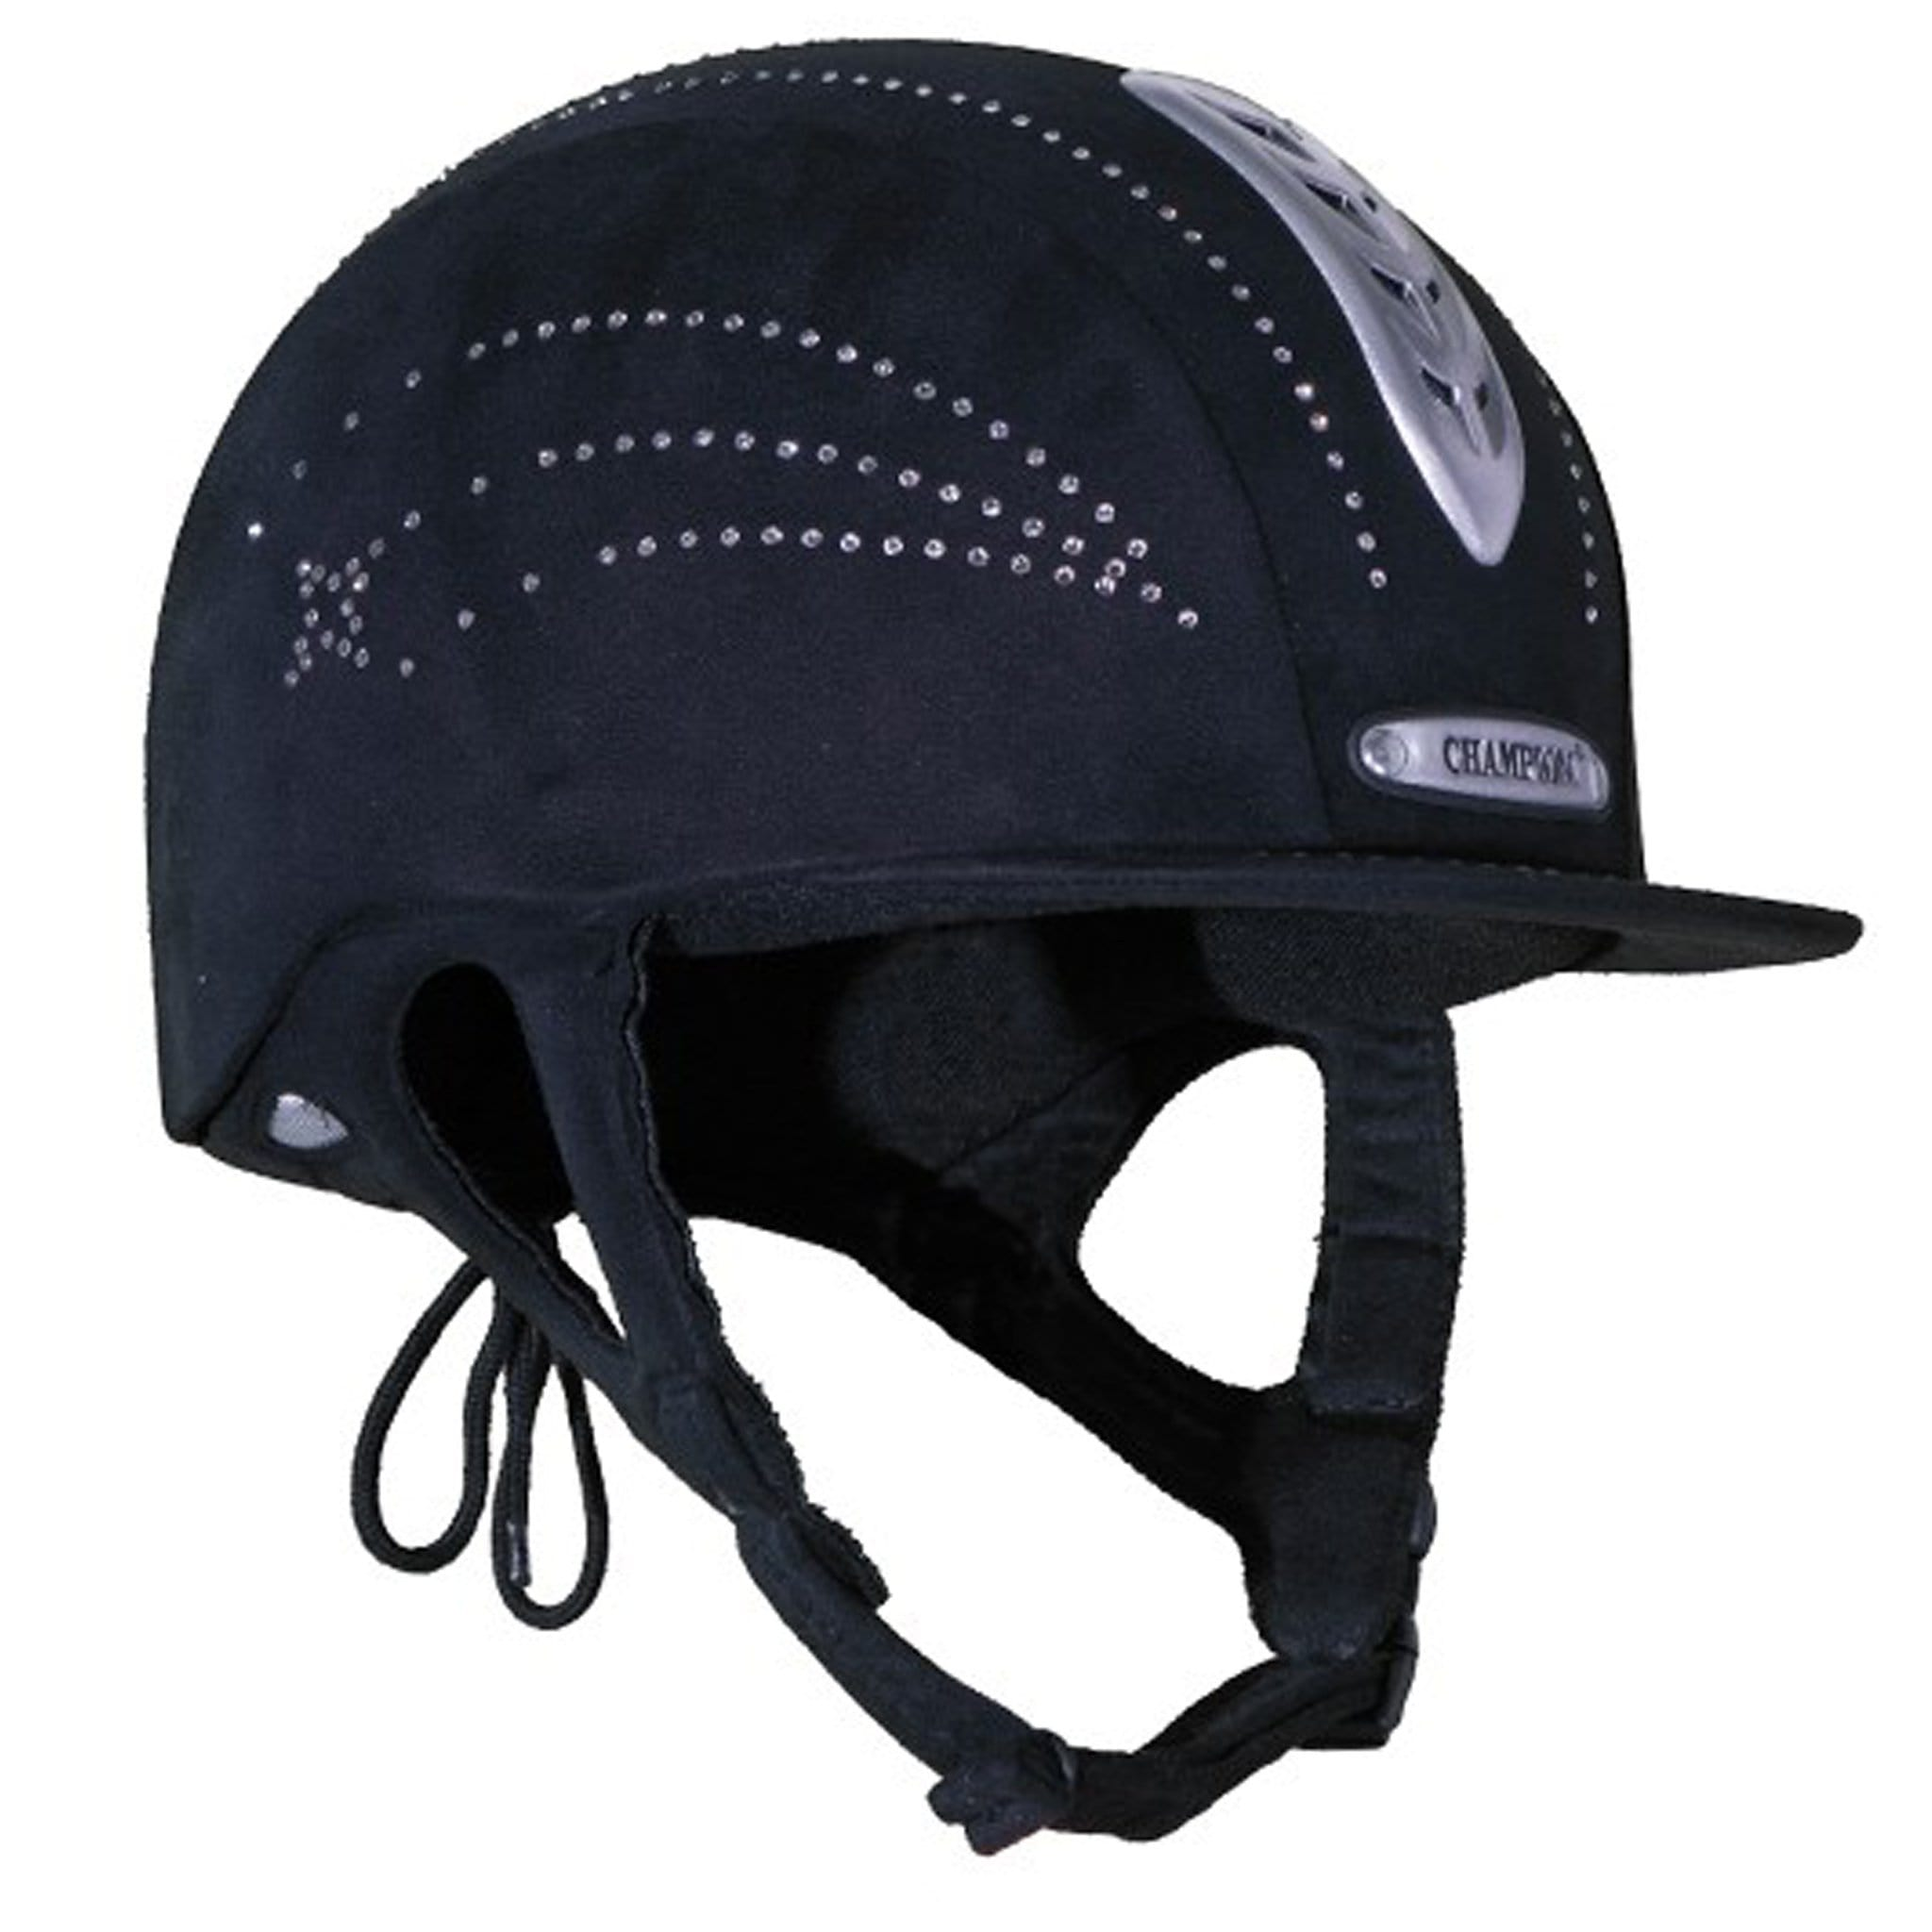 Champion X-Air Star Plus Riding Hat Right Side Black.